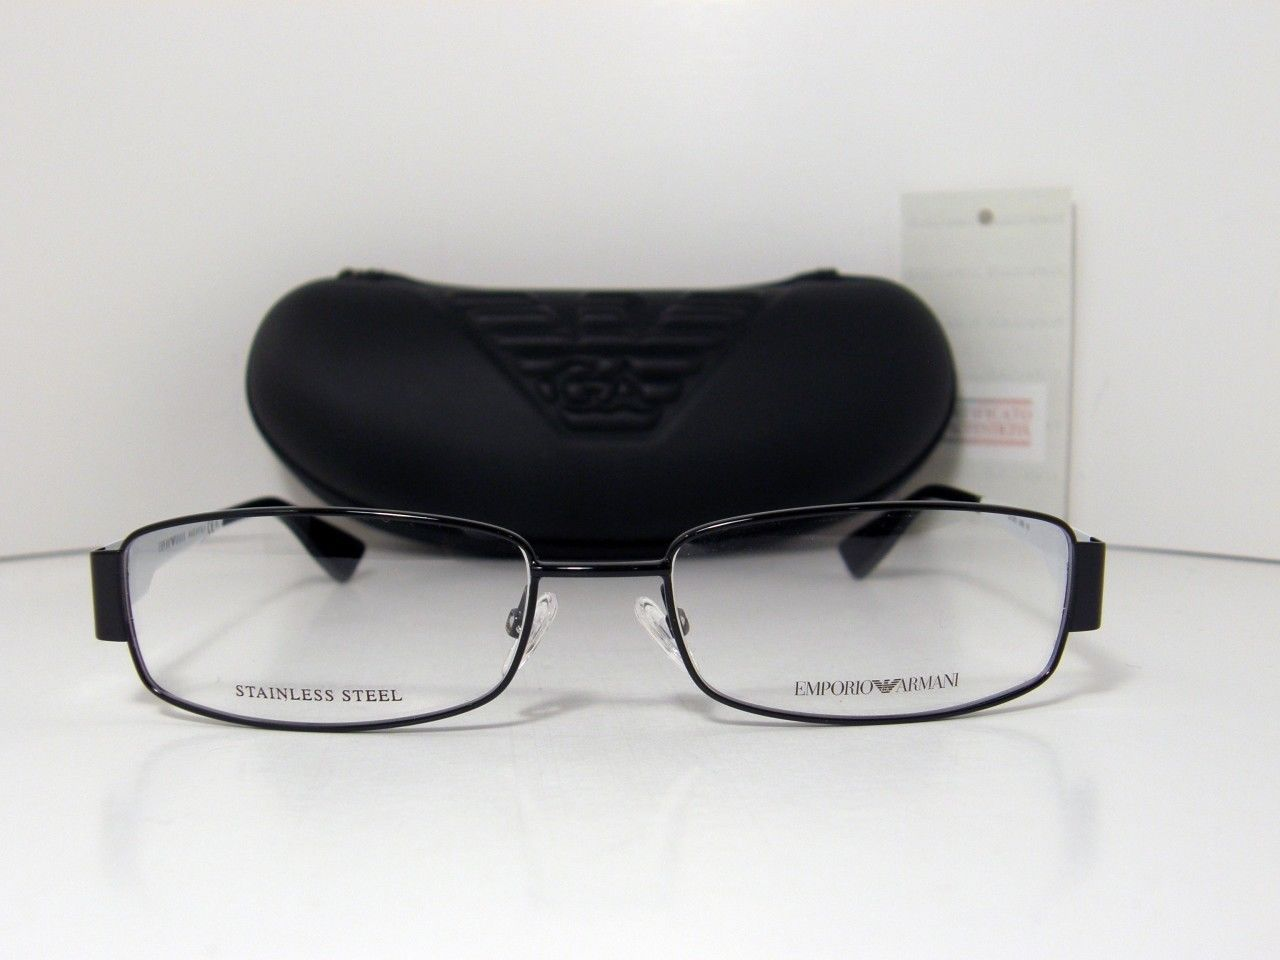 New Authentic Emporio Armani Eyeglasses EA 9661 EA9661 OMM 53mm Made In Italy